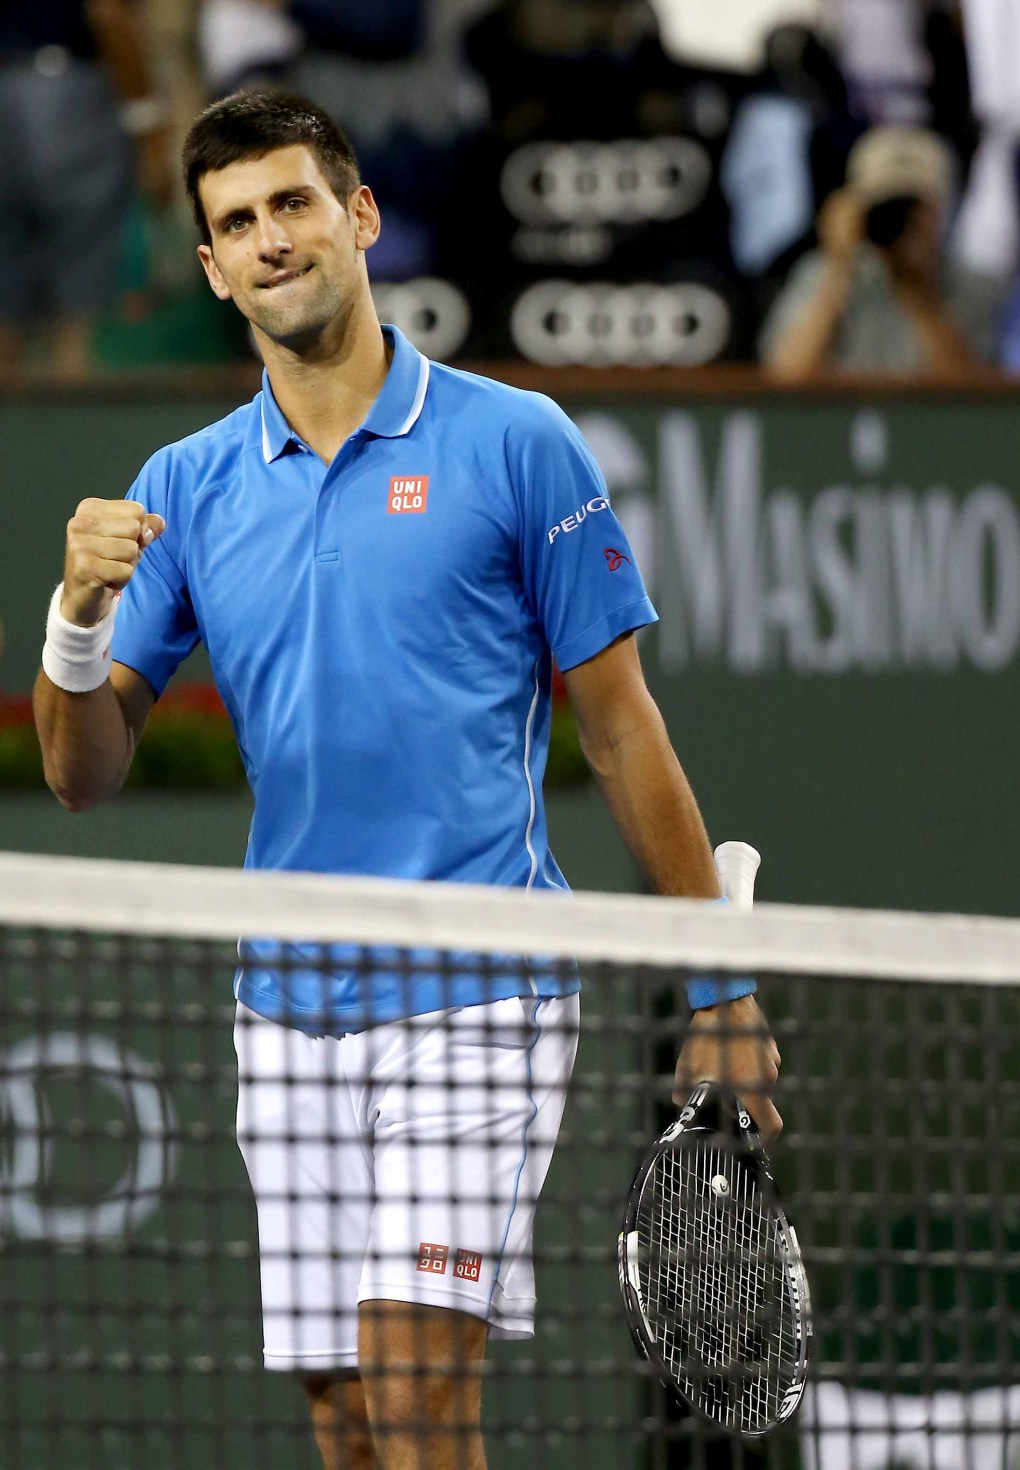 """A fourth round match between Novak Djokovic and John Isner on Stadium 1 during the 2015 BNP Paribas Open in Indian Wells, California on Wednesday, March 18, 2015."""